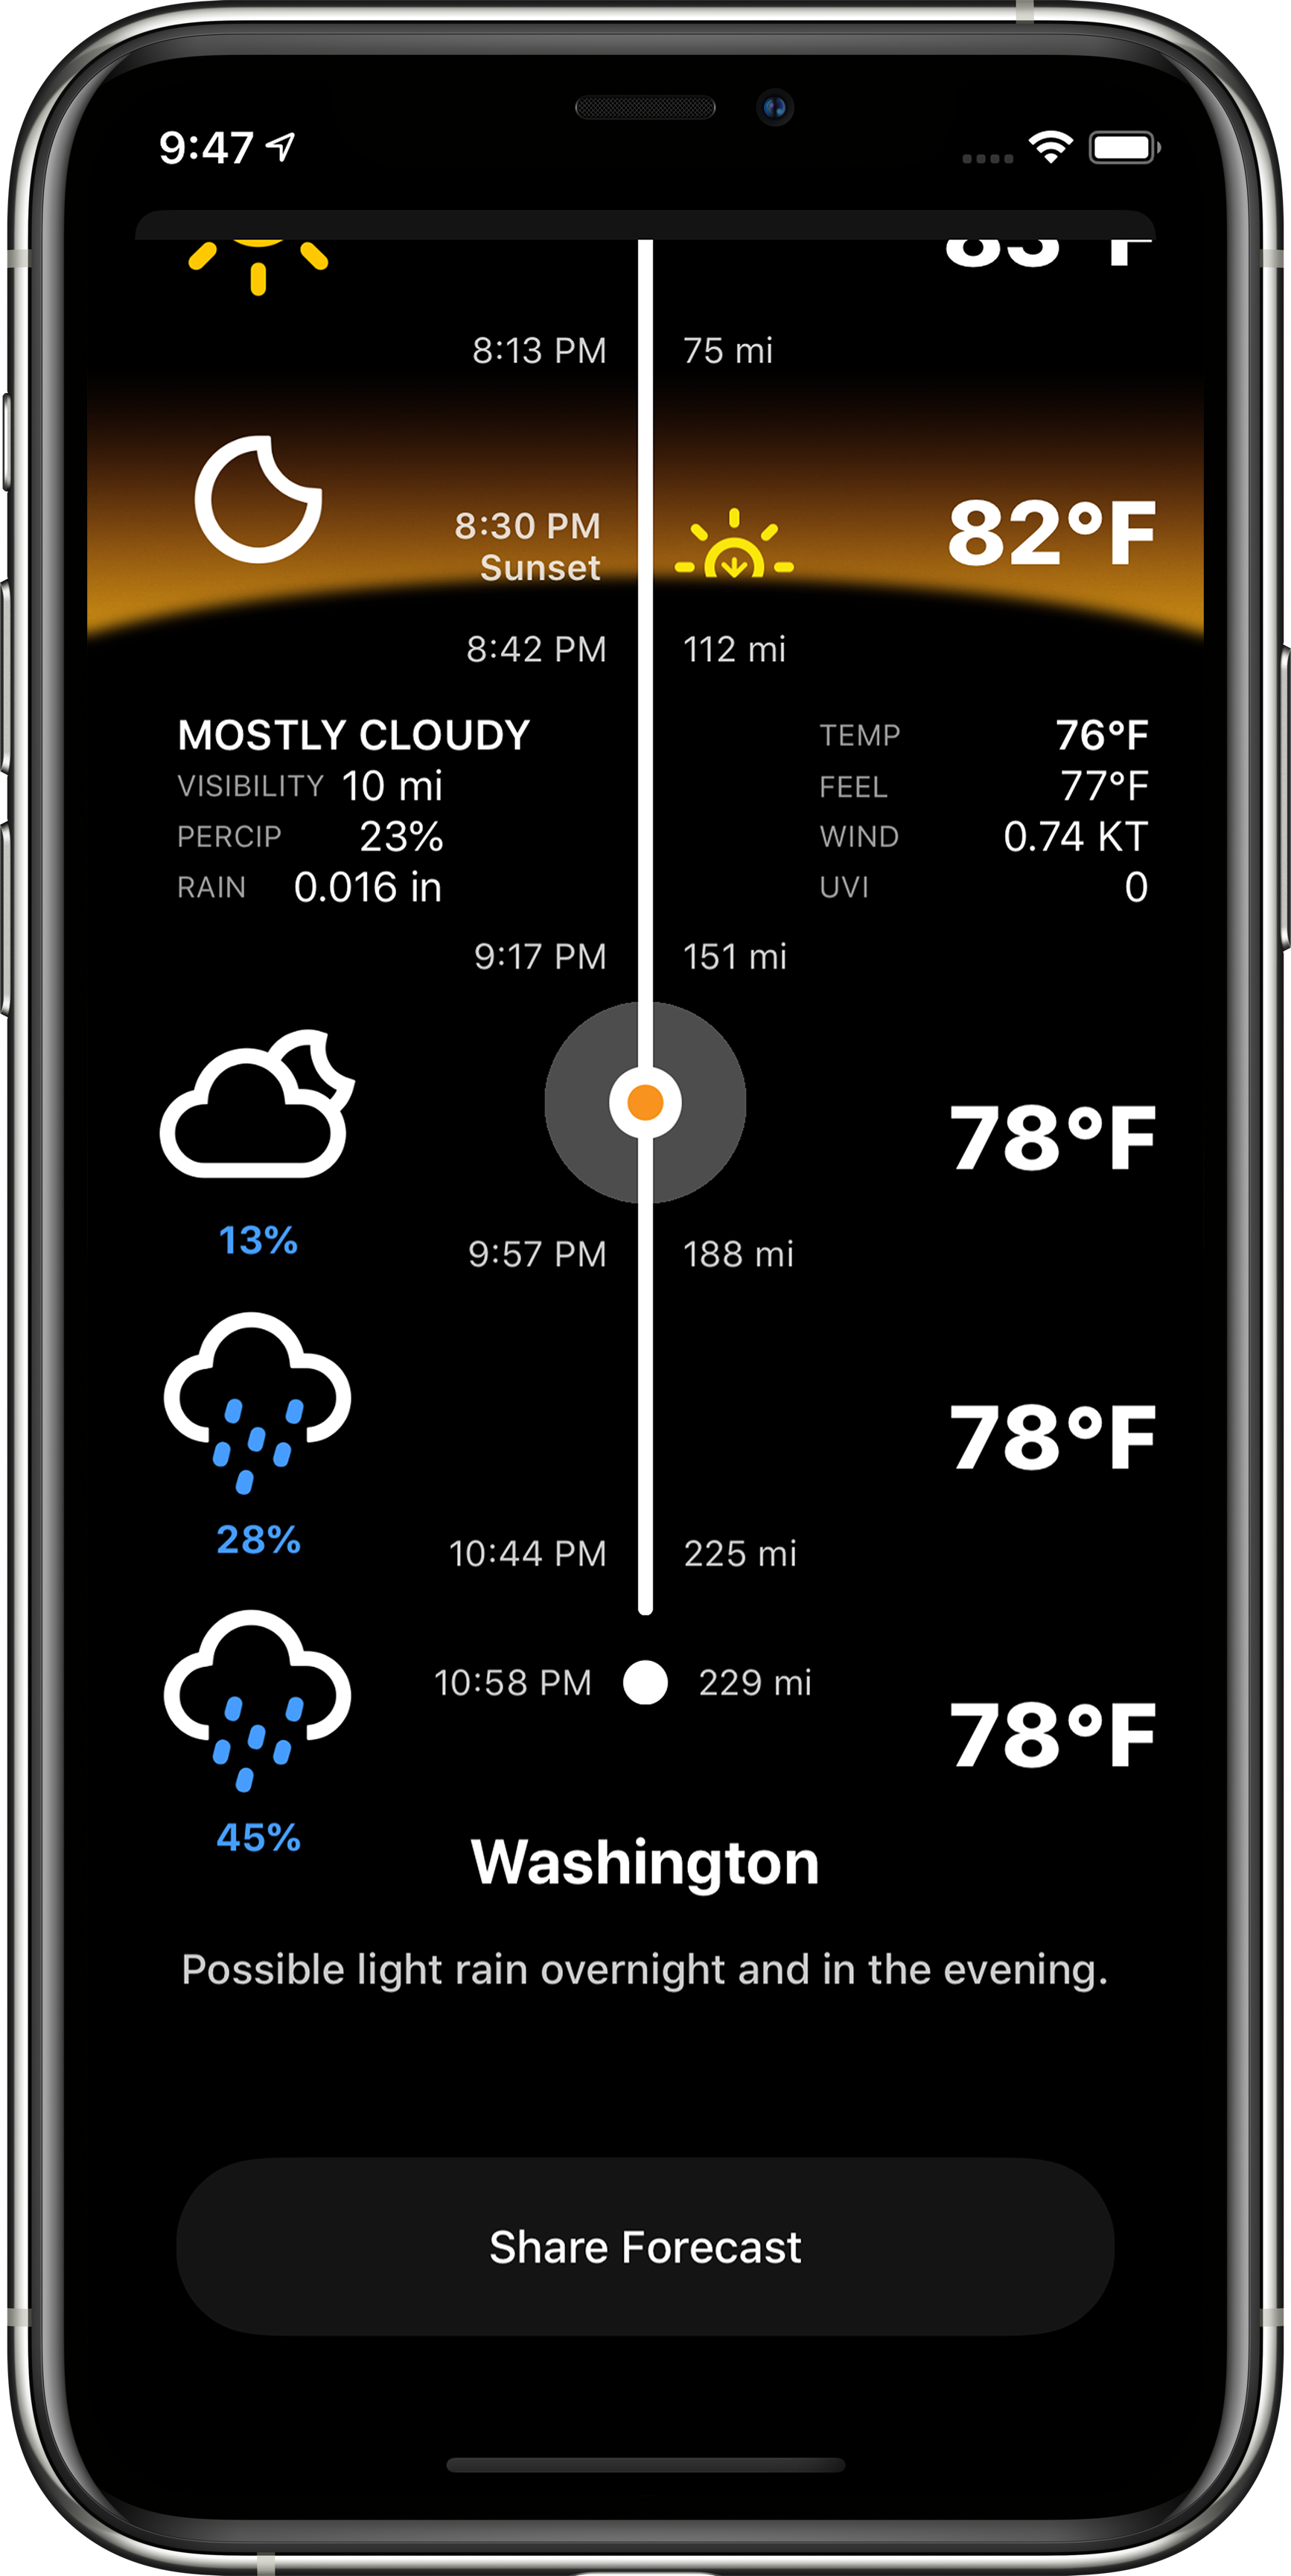 Timeline view showing weather forecast